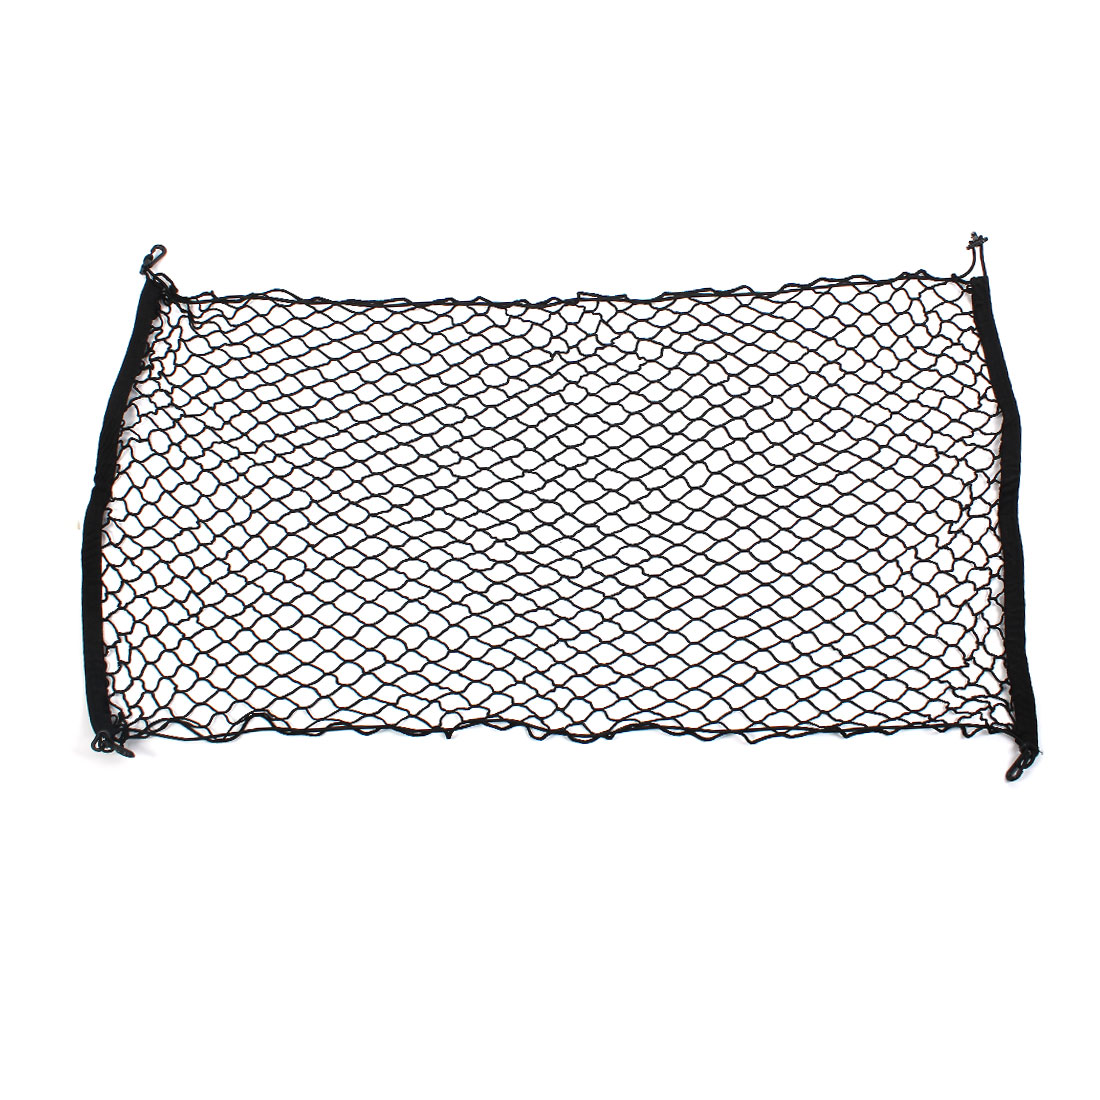 SUV Car Rear Trunk Cargo Storage Organizer Luggage Elastic Mesh Net 120cm x 70cm